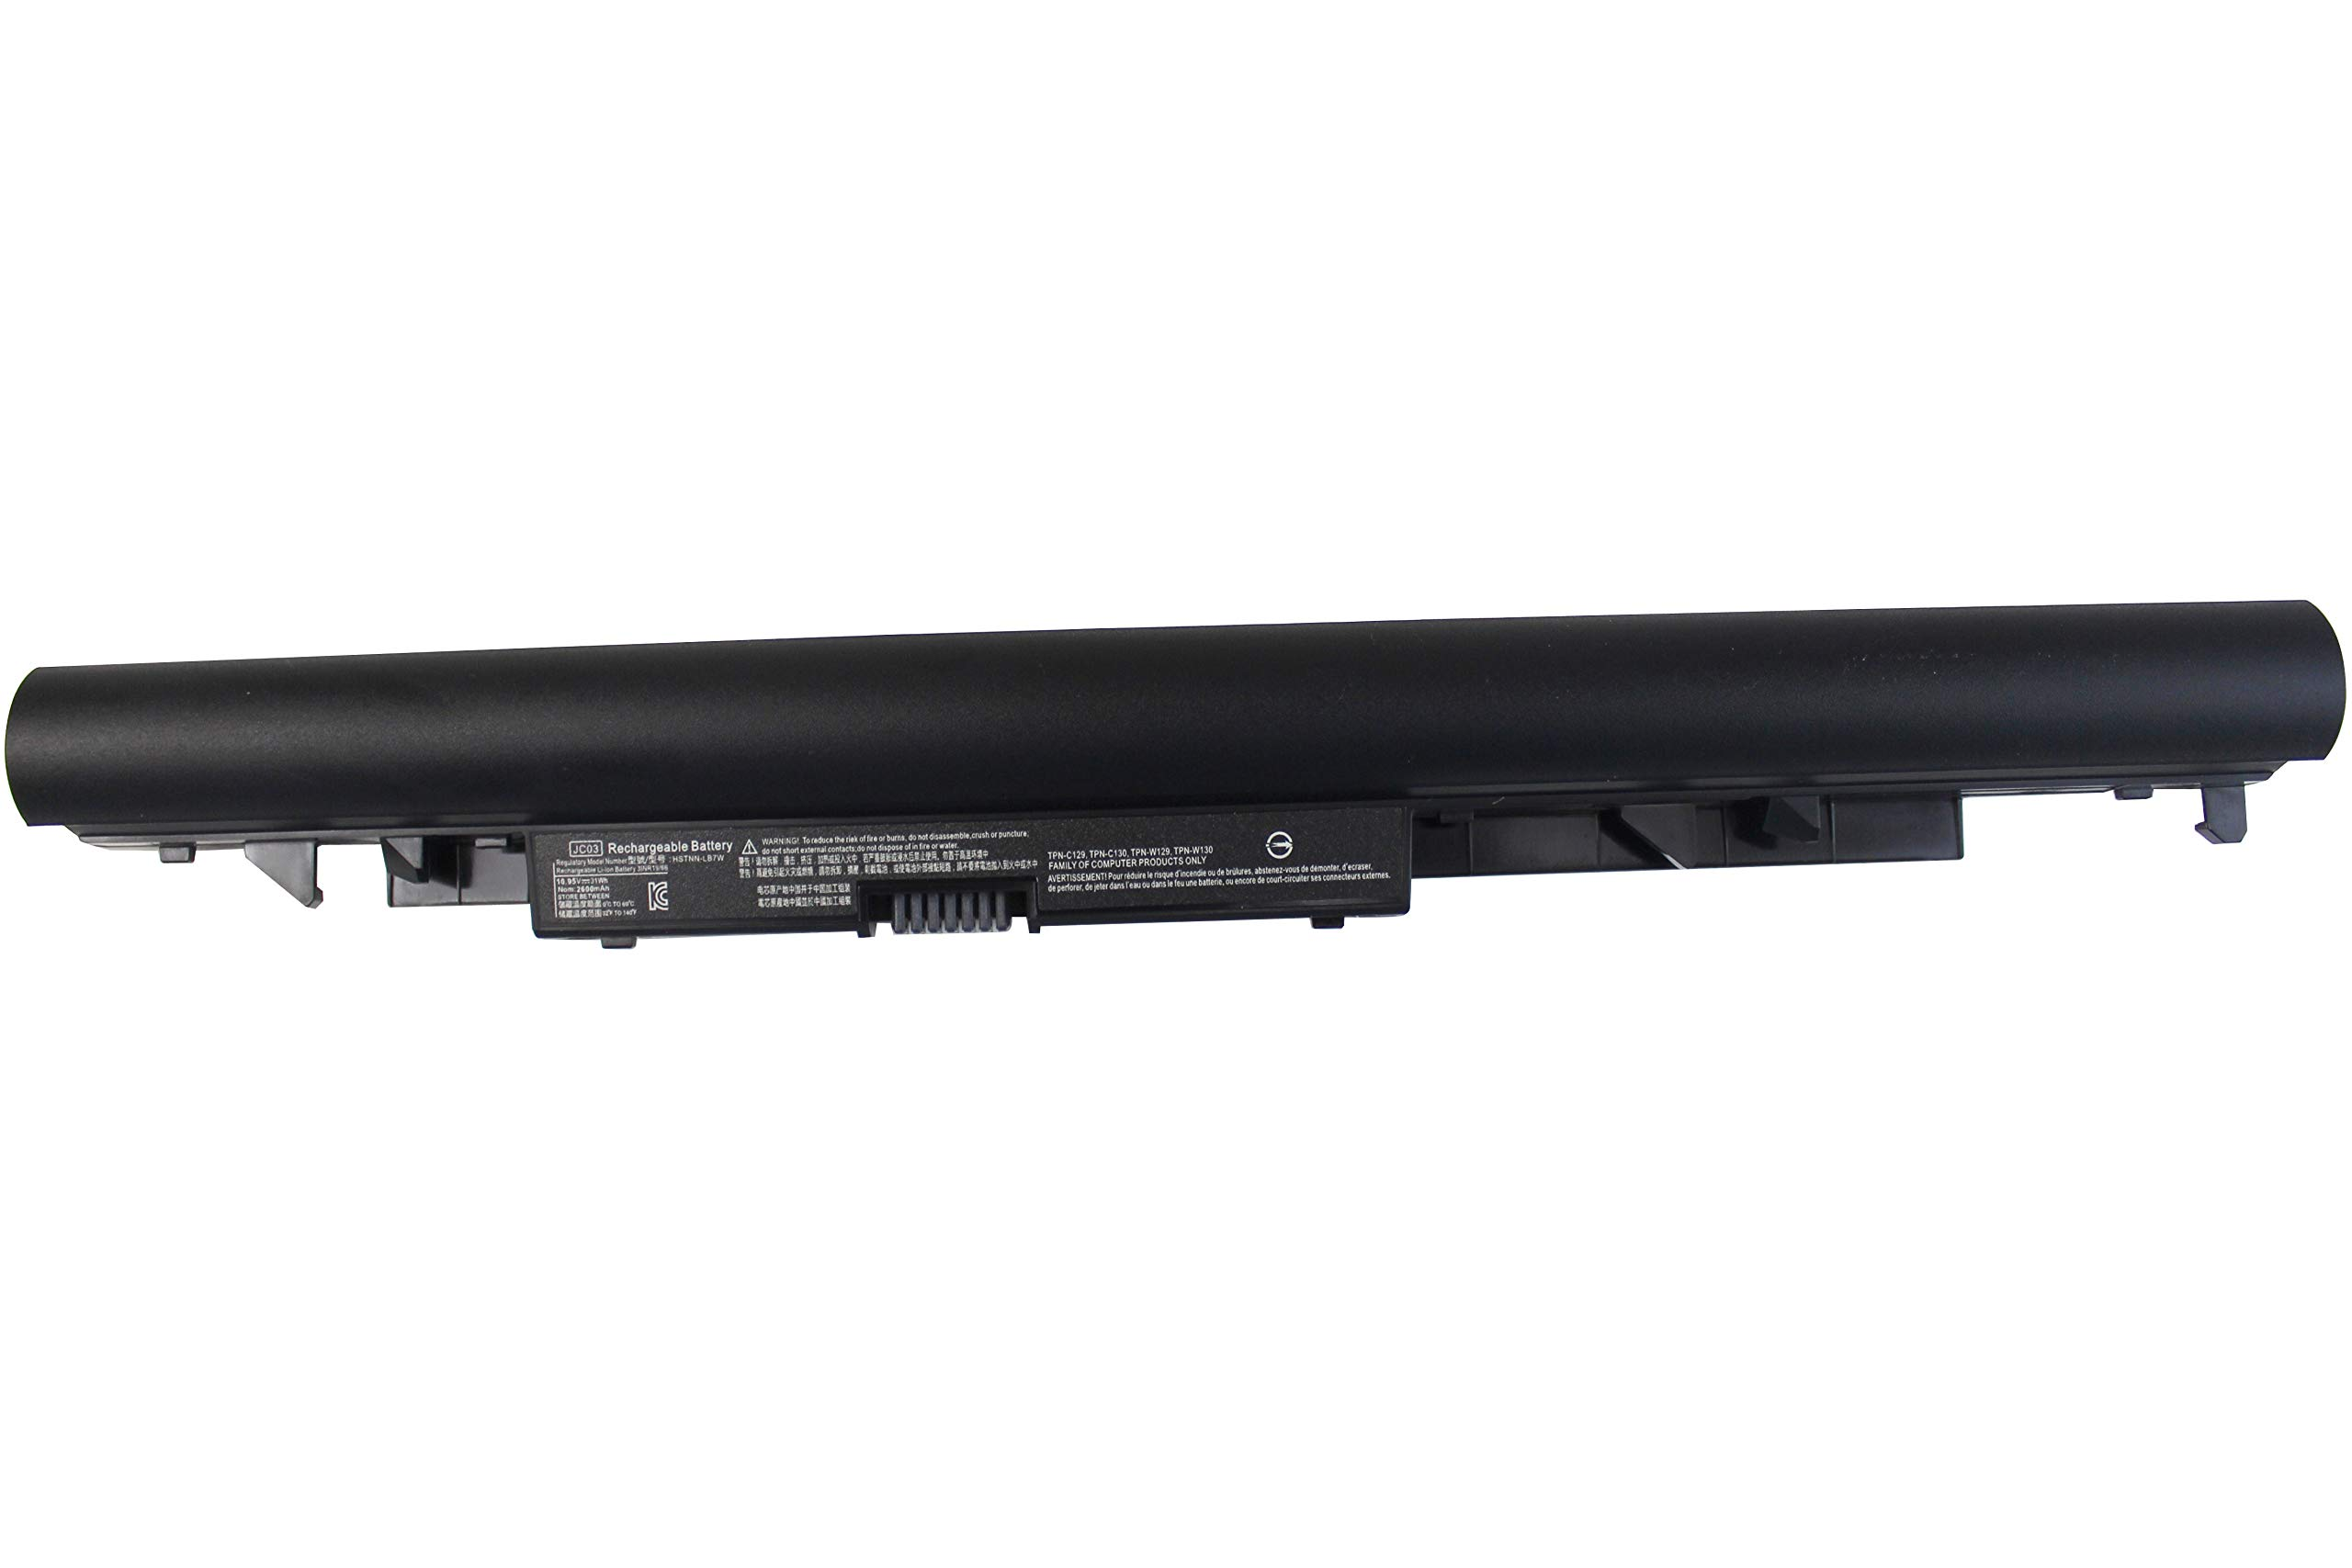 Bateria JC03 para HP 15-BS000 15-BW000 Series 15-bs013dx 15-bs015dx 15-bs053od 15-bs091ms 15-bs095ms 15-bs0115dx 15-bw01